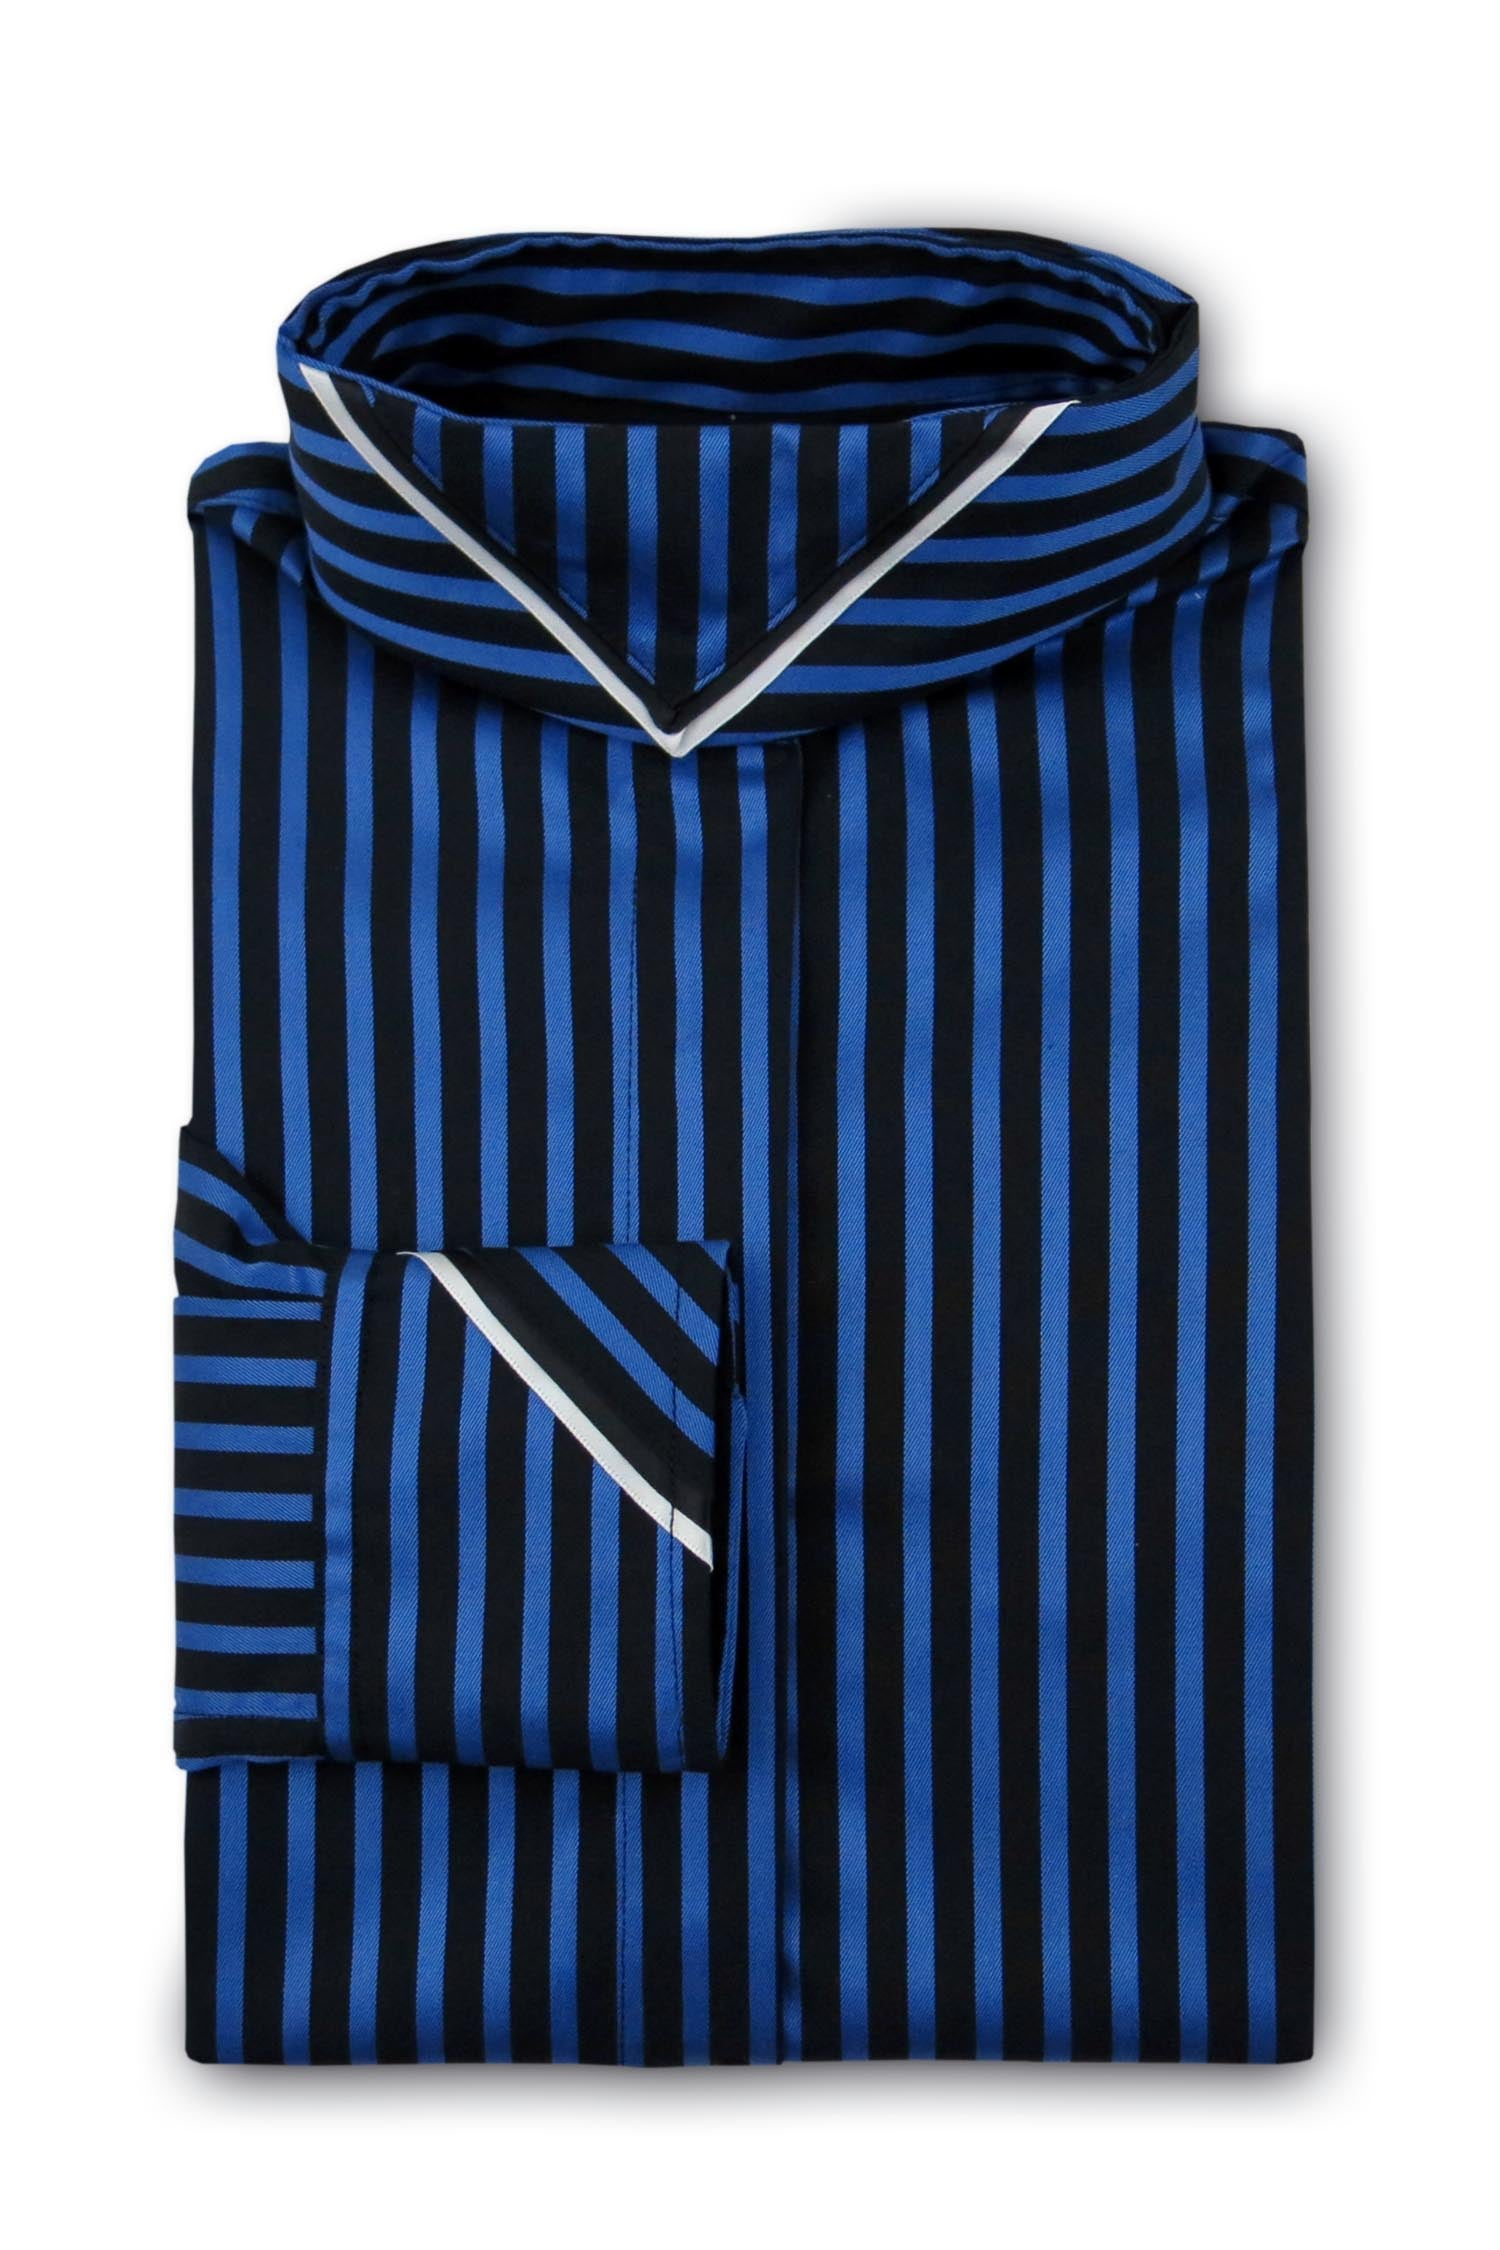 Black and Cobalt Stripe - Black & White